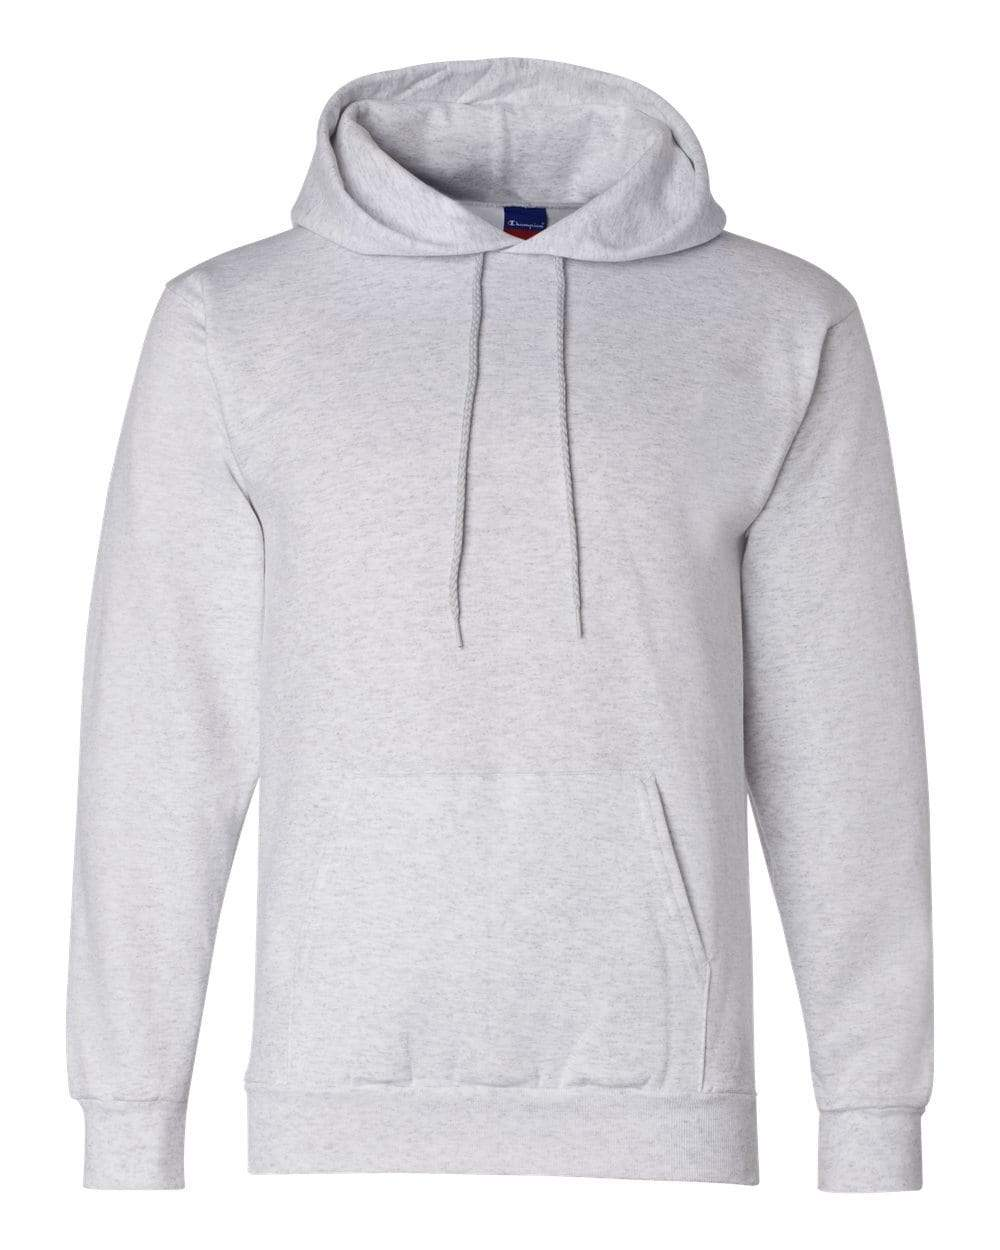 Champion Sweatshirts S / Silver Grey Champion - Double Dry Eco Hooded Sweatshirt